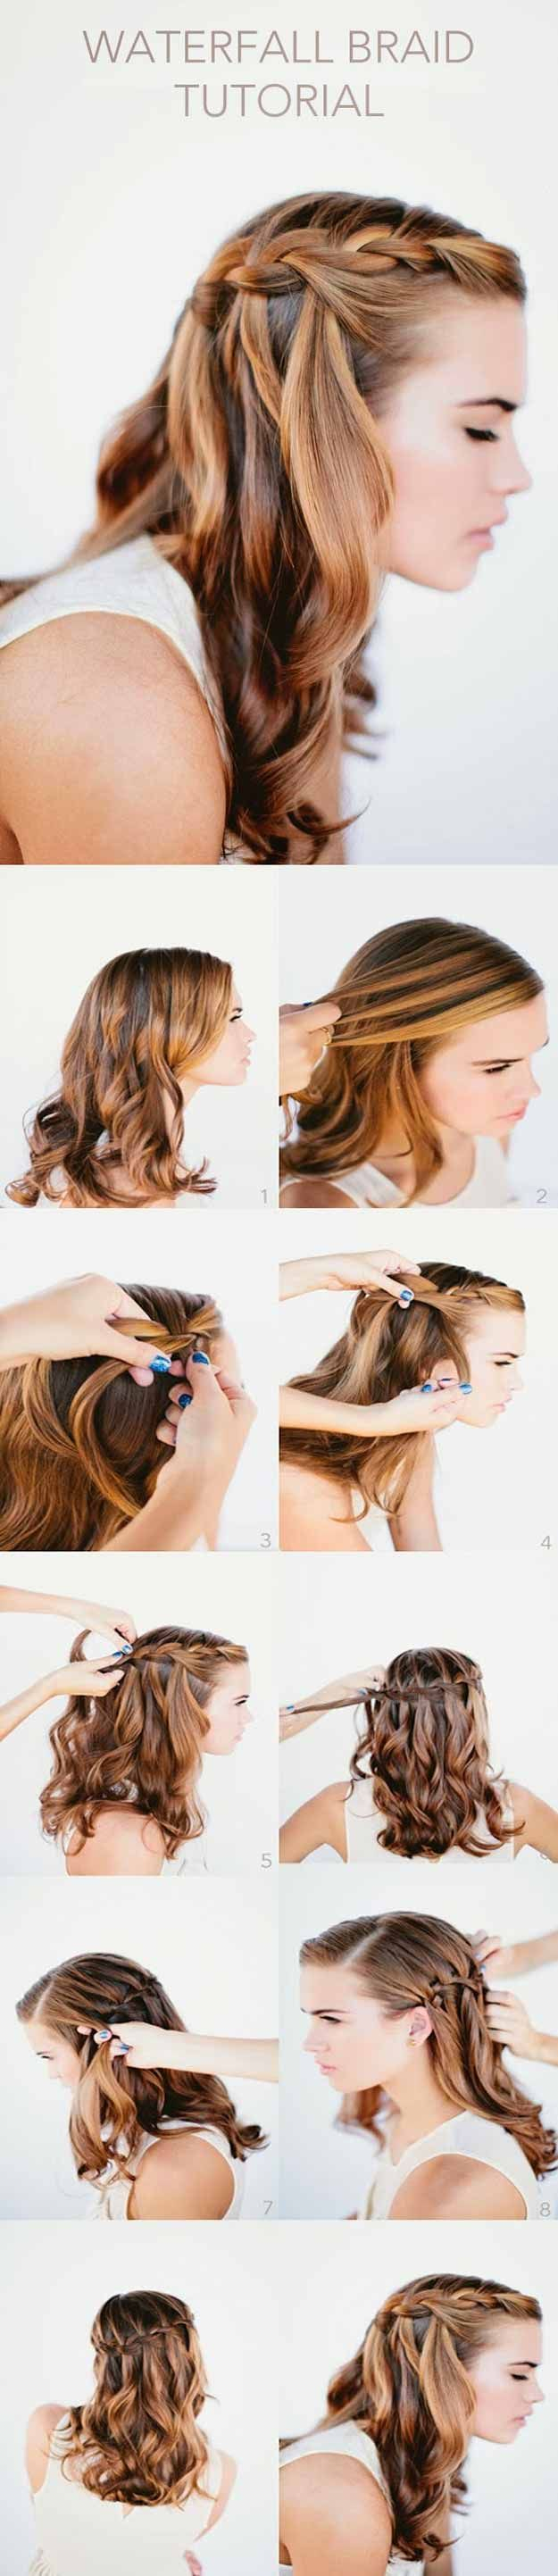 Best 5 Minute Hairstyles - How to do a Waterfall Braid Hairstyle